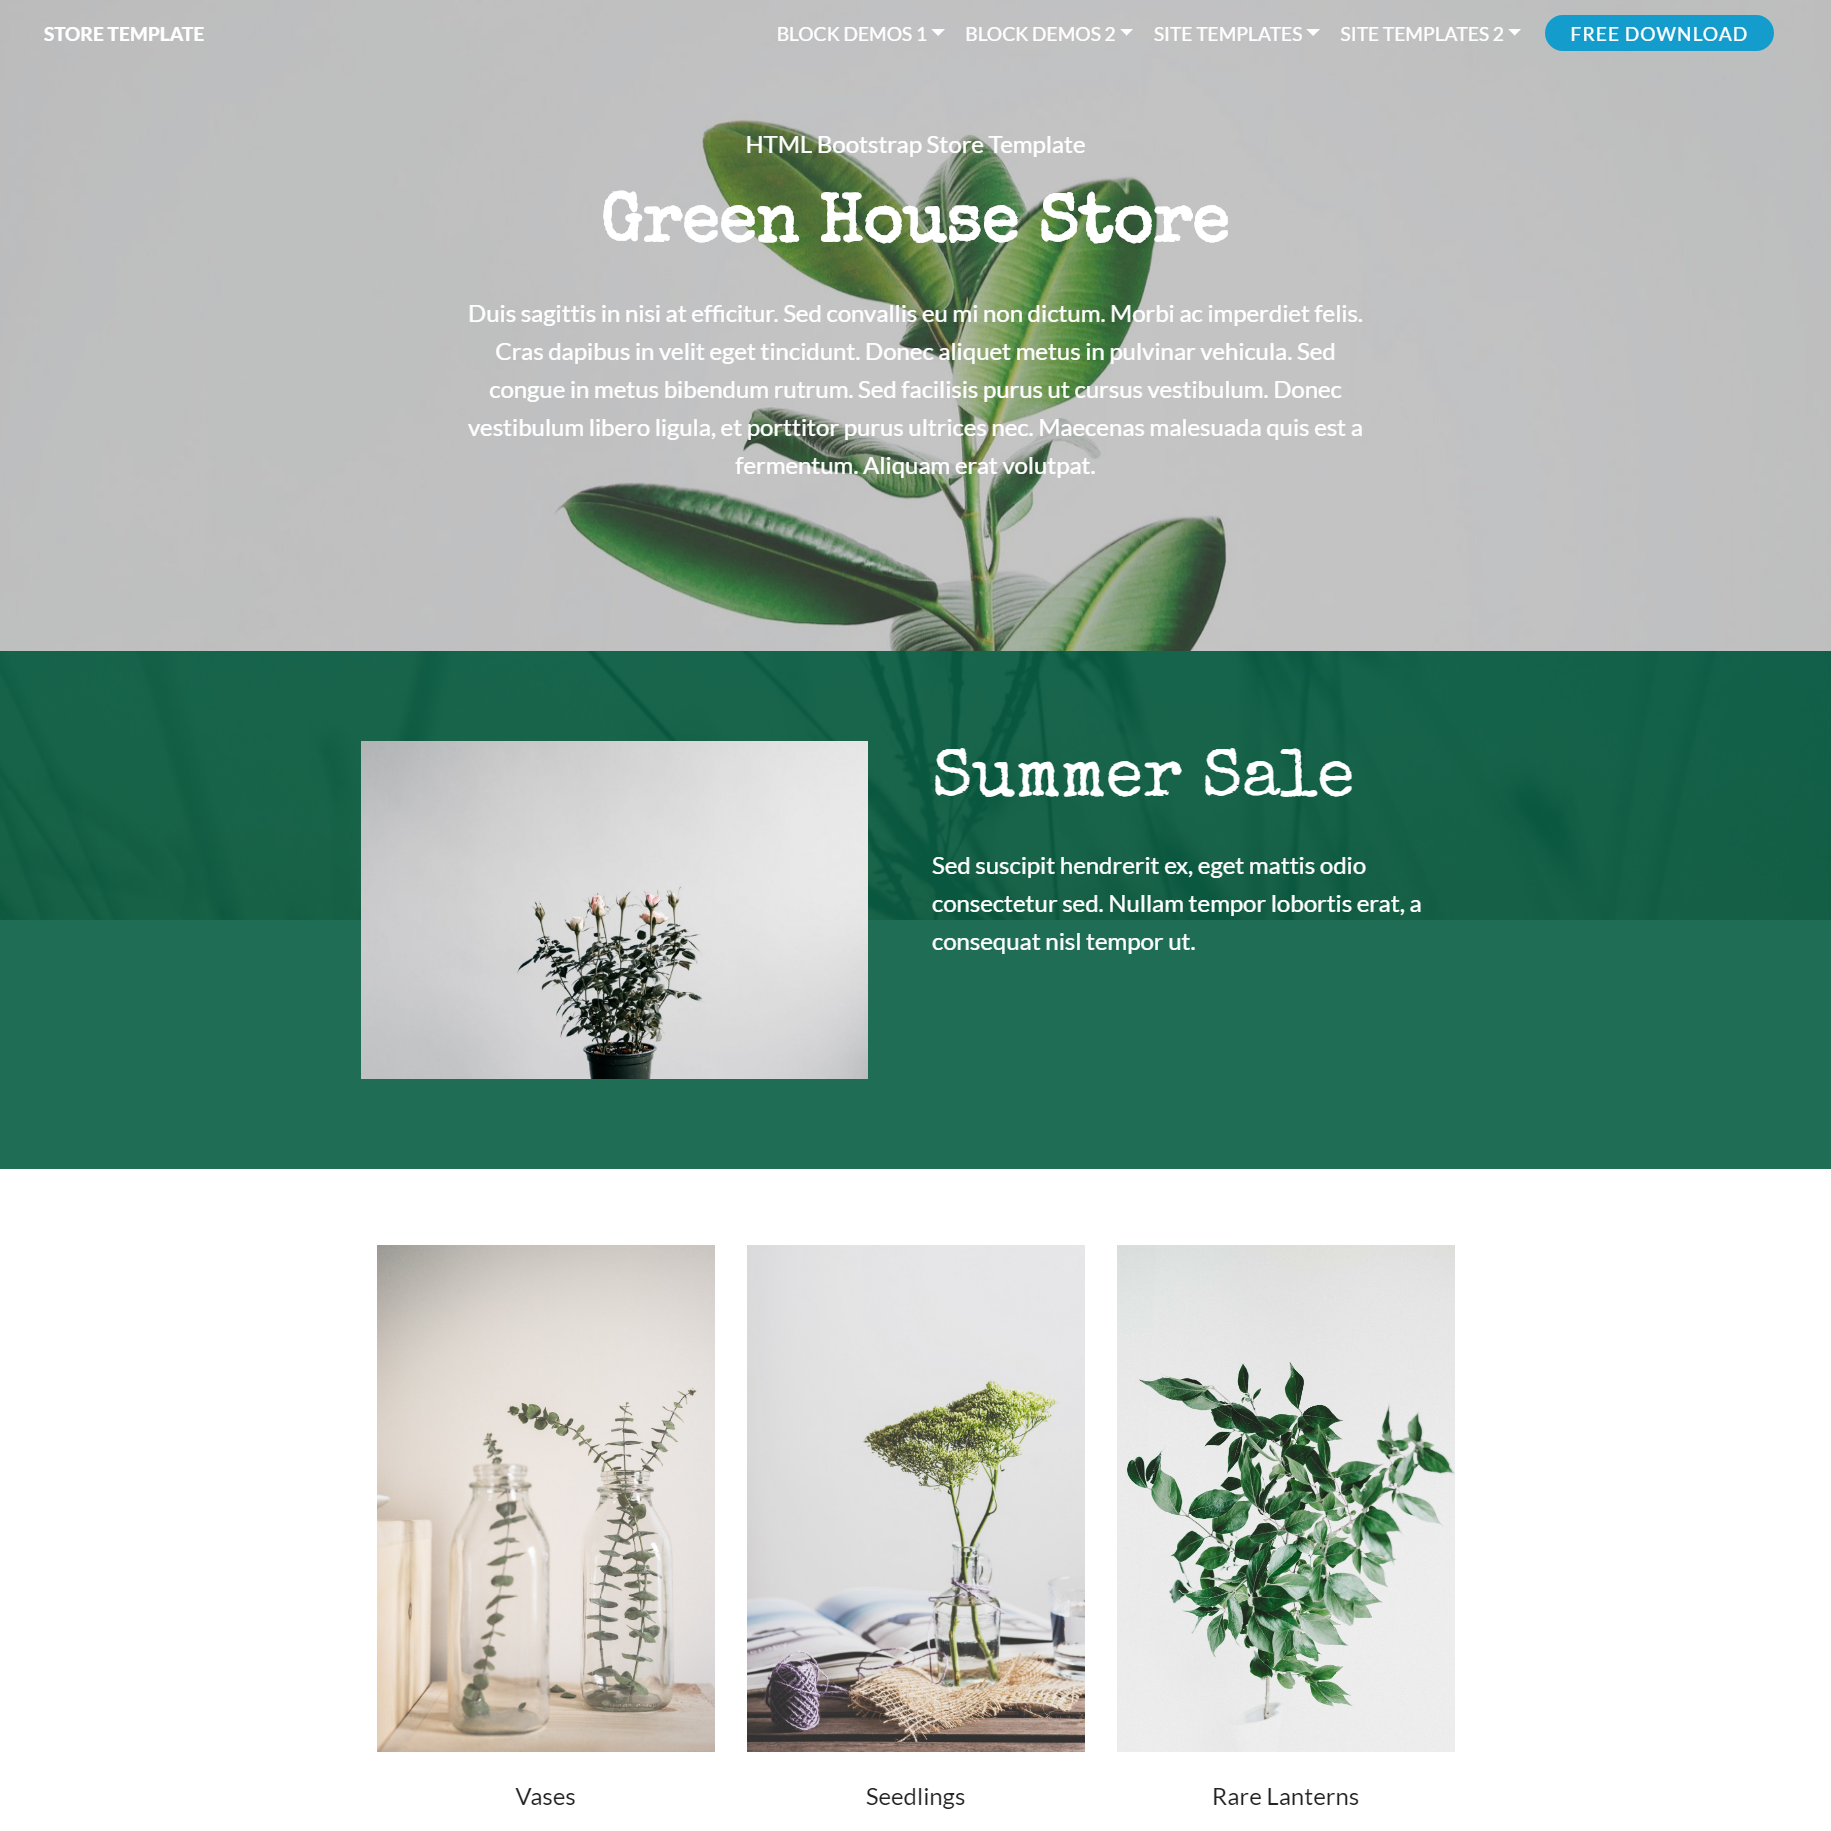 Free Download Bootstrap Store Themes